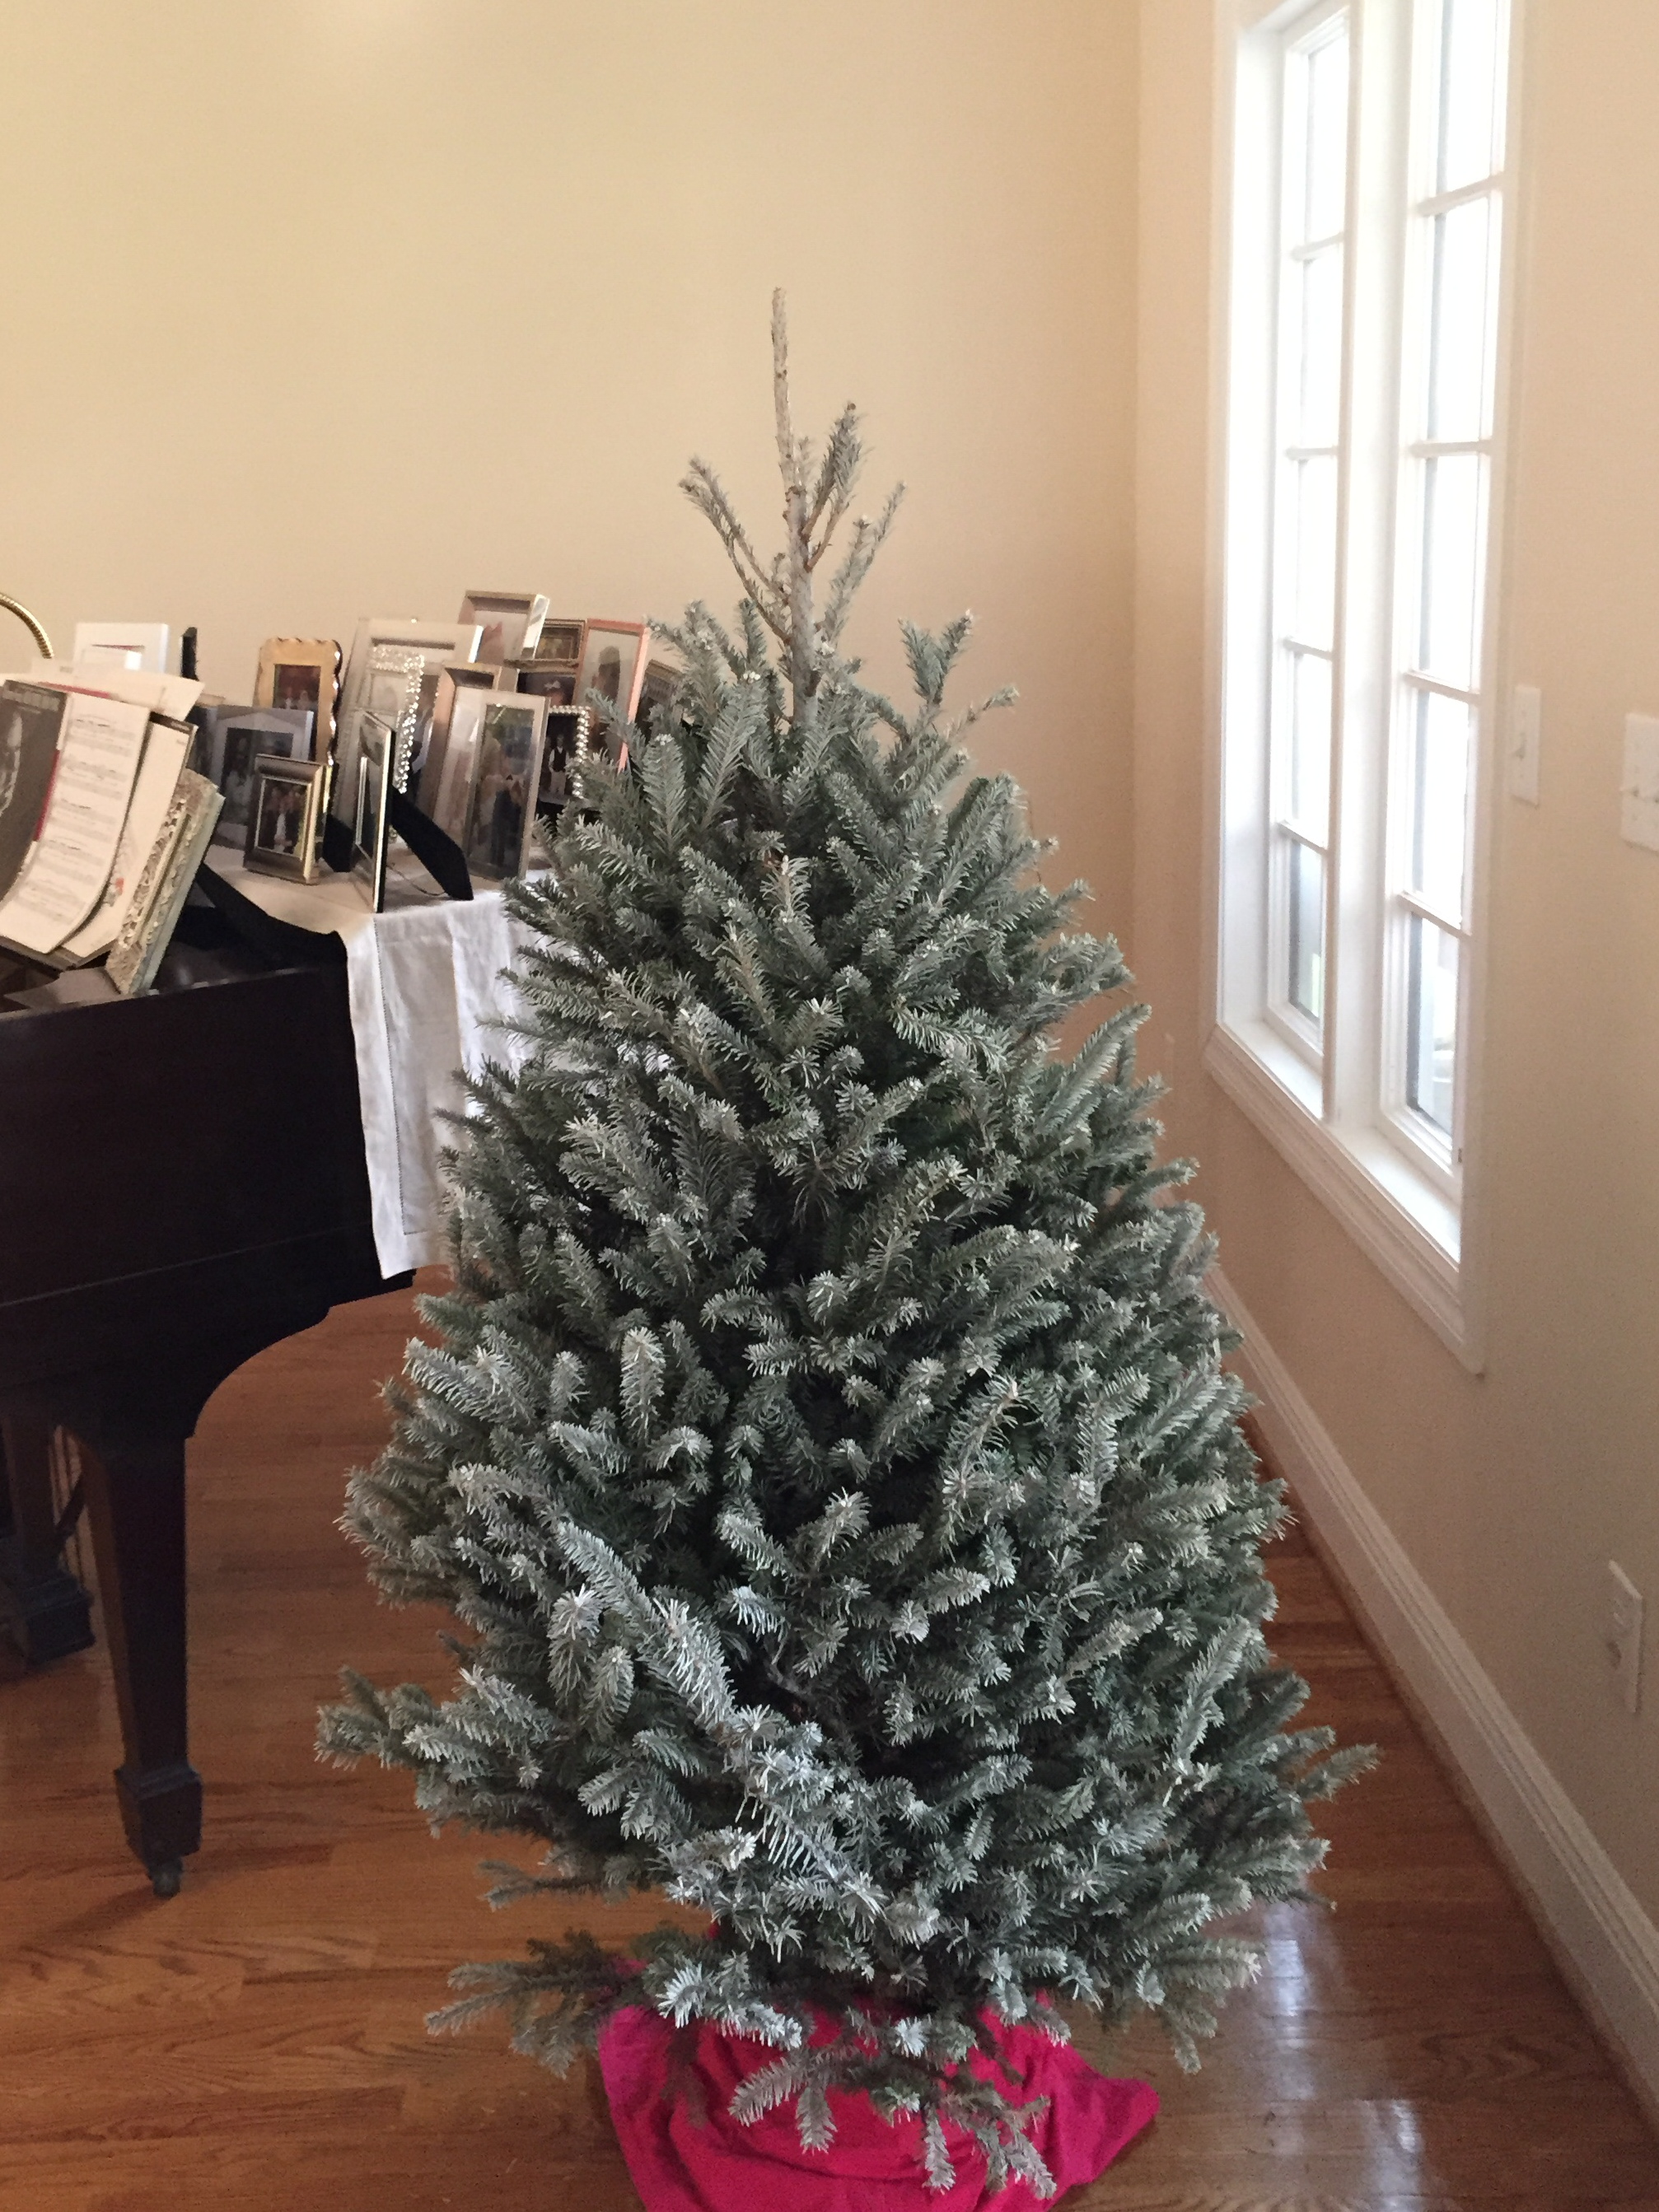 Cartner Frosted Fraser Fir 3' or 4' tall with stand